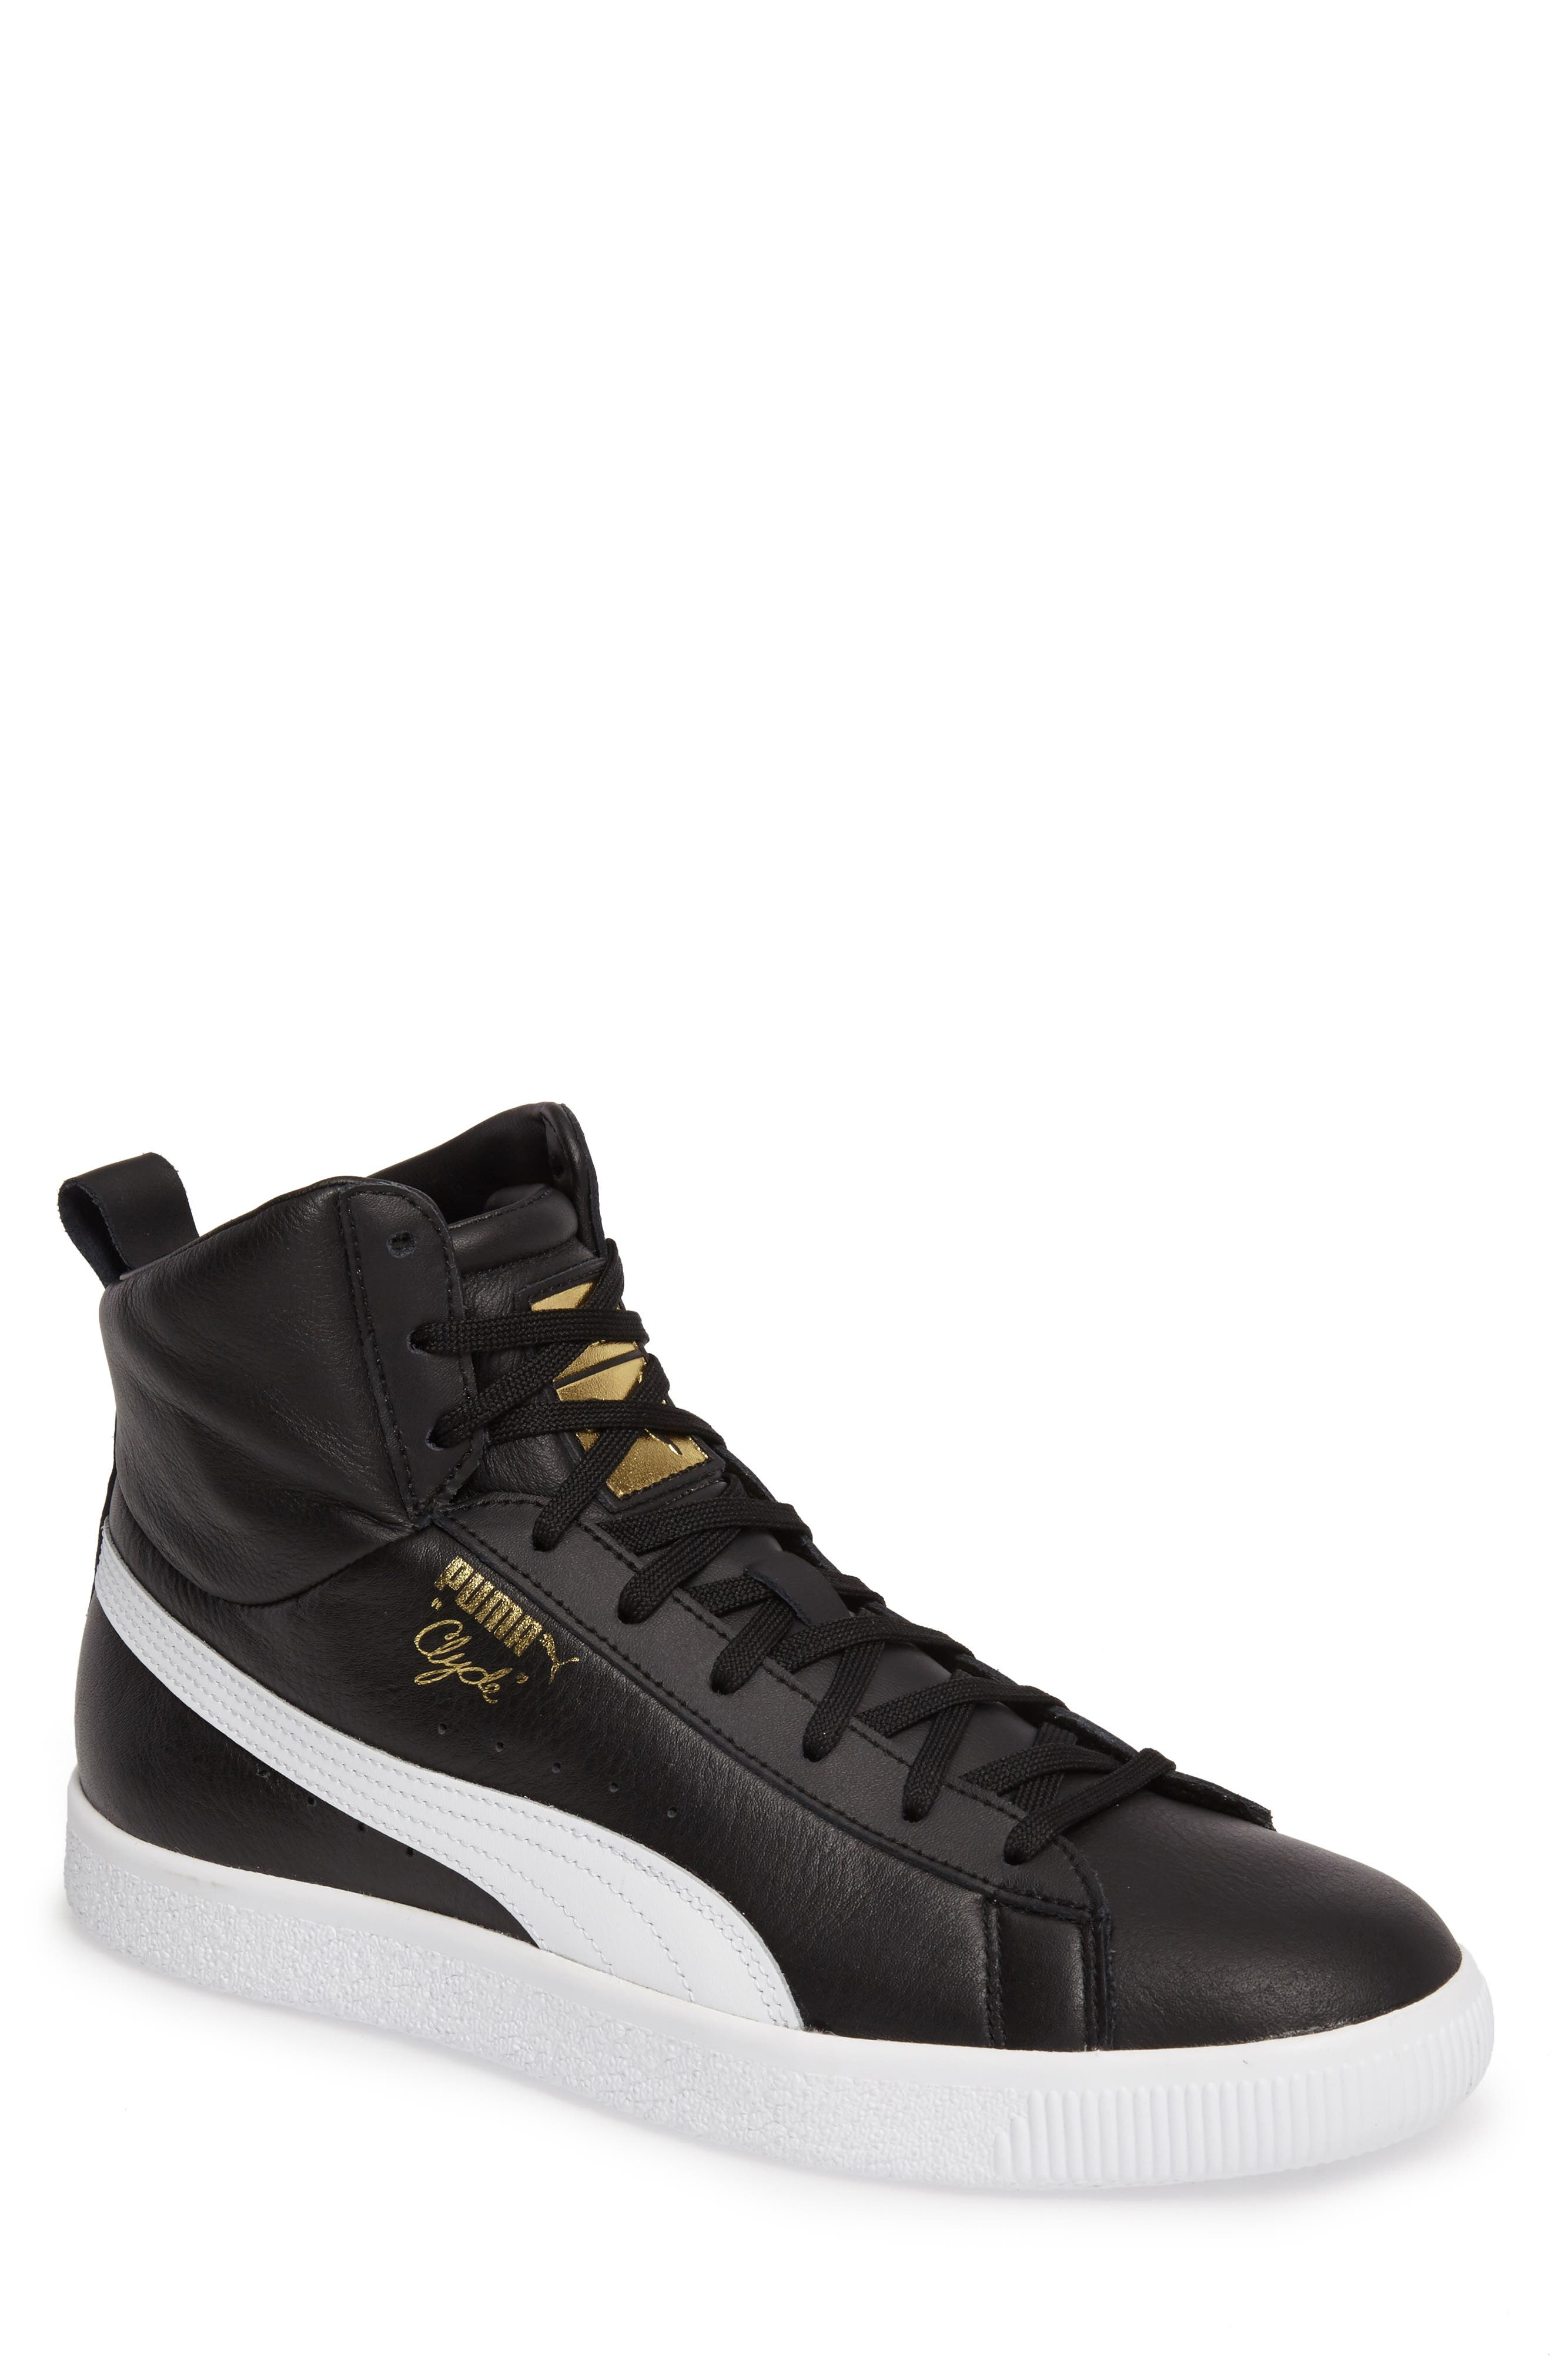 Clyde Mid Sneaker,                         Main,                         color, Black/ White